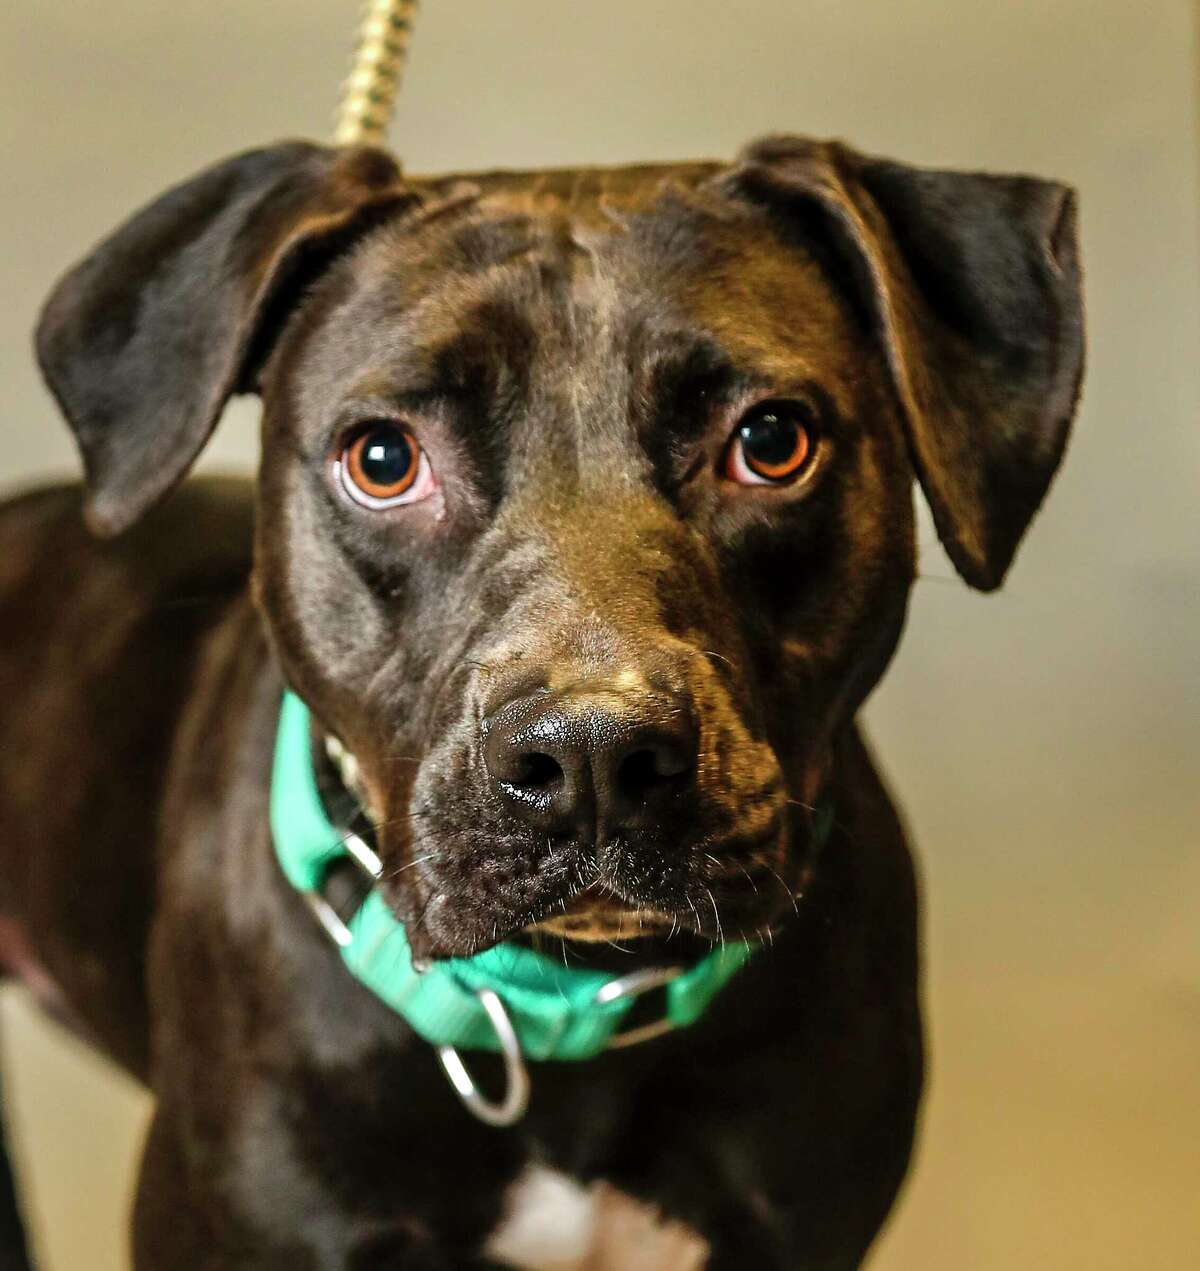 Alfredo is a 1 1/2-year-old, male, Labrador Retriever mix available for adoption at the Montgomery County Animal Shelter, in Conroe. (Animal ID: A312519) Photographed Tuesday, August 27, 2019. Alfredo is a social and fun dog, who loves being in doggie playgroups. Alfredo has been at the shelter for over 245 days, he was brought into the shelter as a puppy, and he has grown up here. He would love to get out and know how freedom feels.